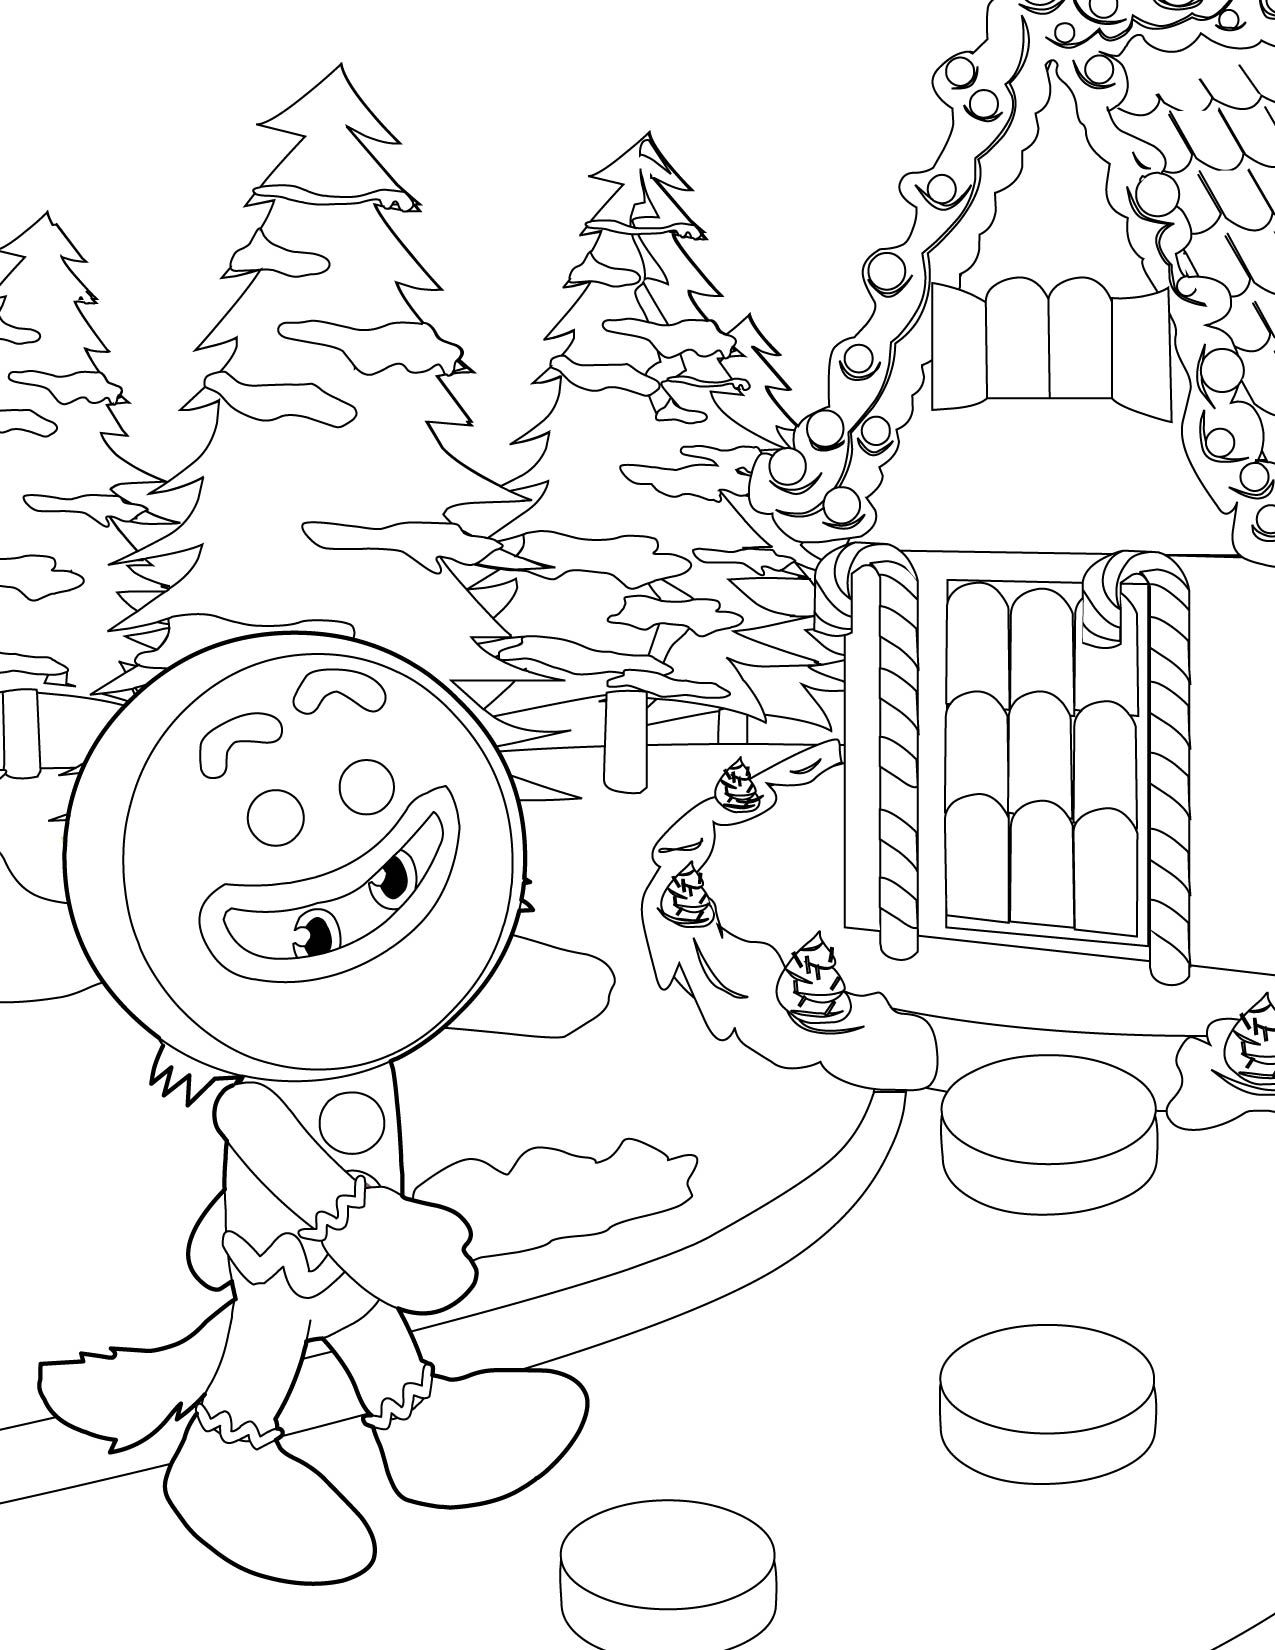 gingerbread houses coloring pages - Gingerbread Man House Coloring Pages